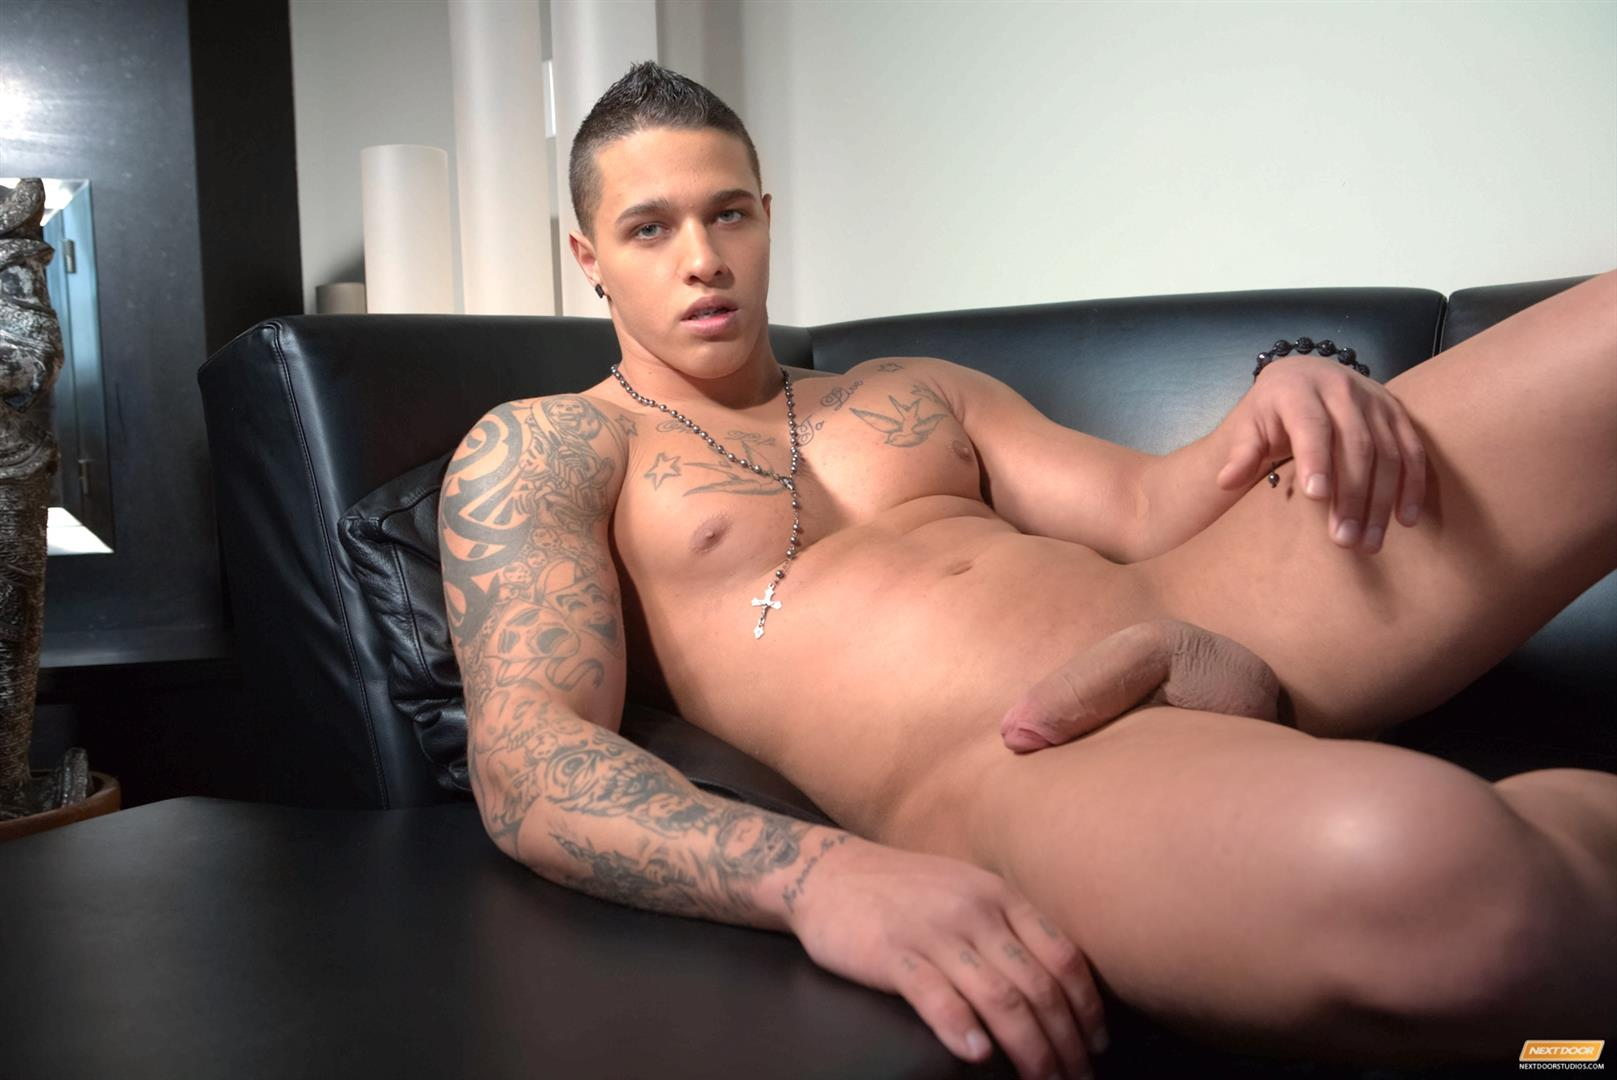 Next-Door-Male-Johnny-Diesel-Muscle-Hunk-Jerking-A-Big-Uncut-Cock-Amateur-Gay-Porn-08 Muscle Hunk Johnny Diesel Stroking His Thick Uncut Cock